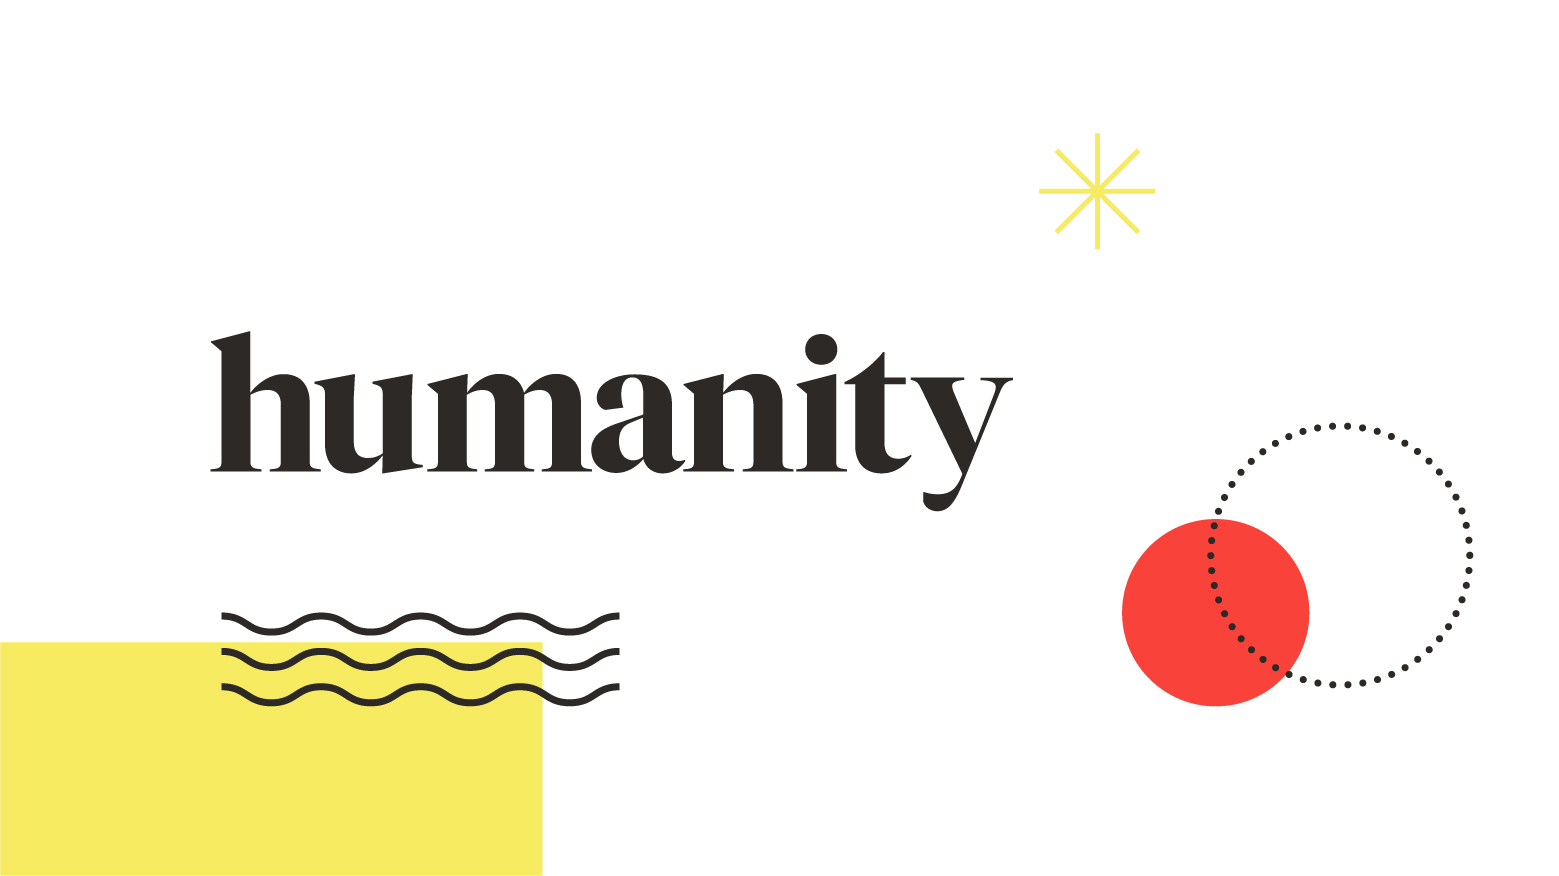 humanity_pressrelease__Strategy[13][2]